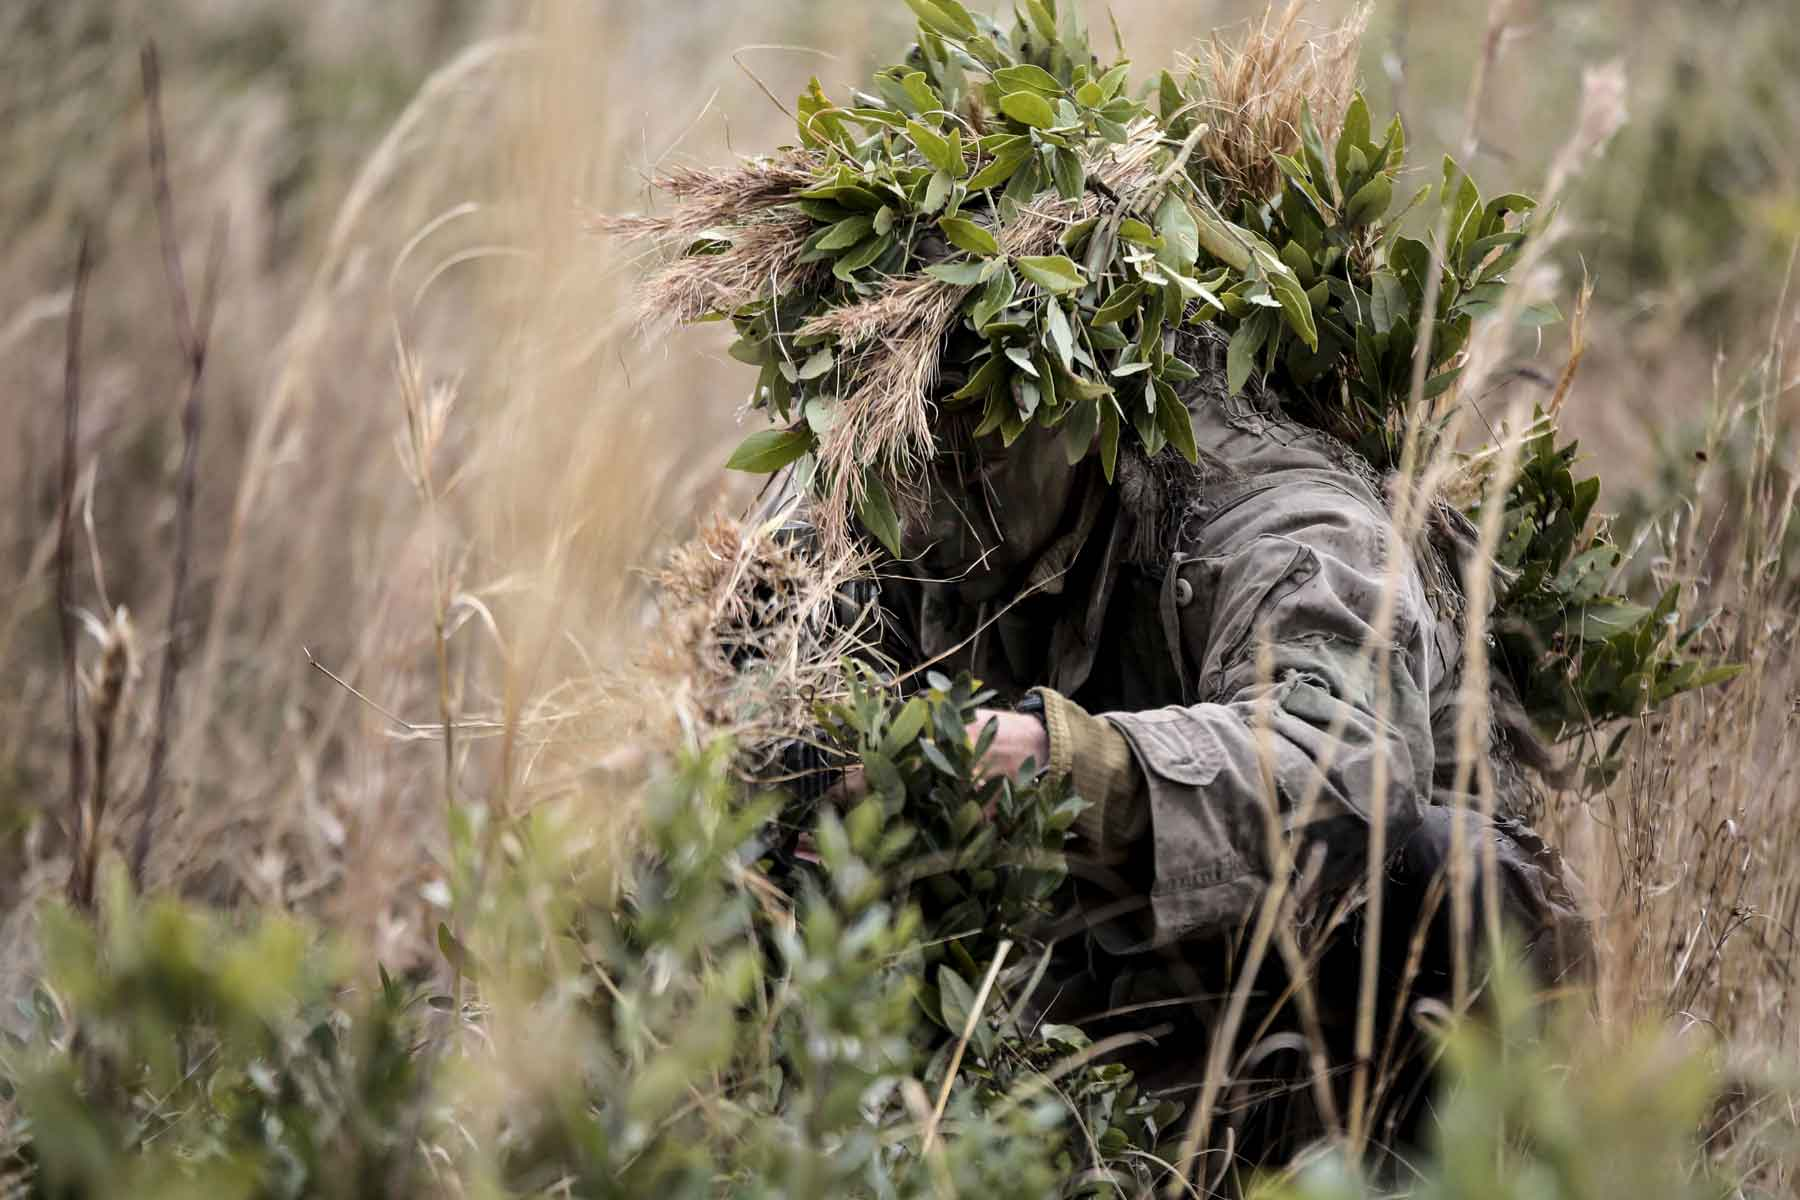 Marine Scout Sniper Managed To Sneak Up On His Enemy